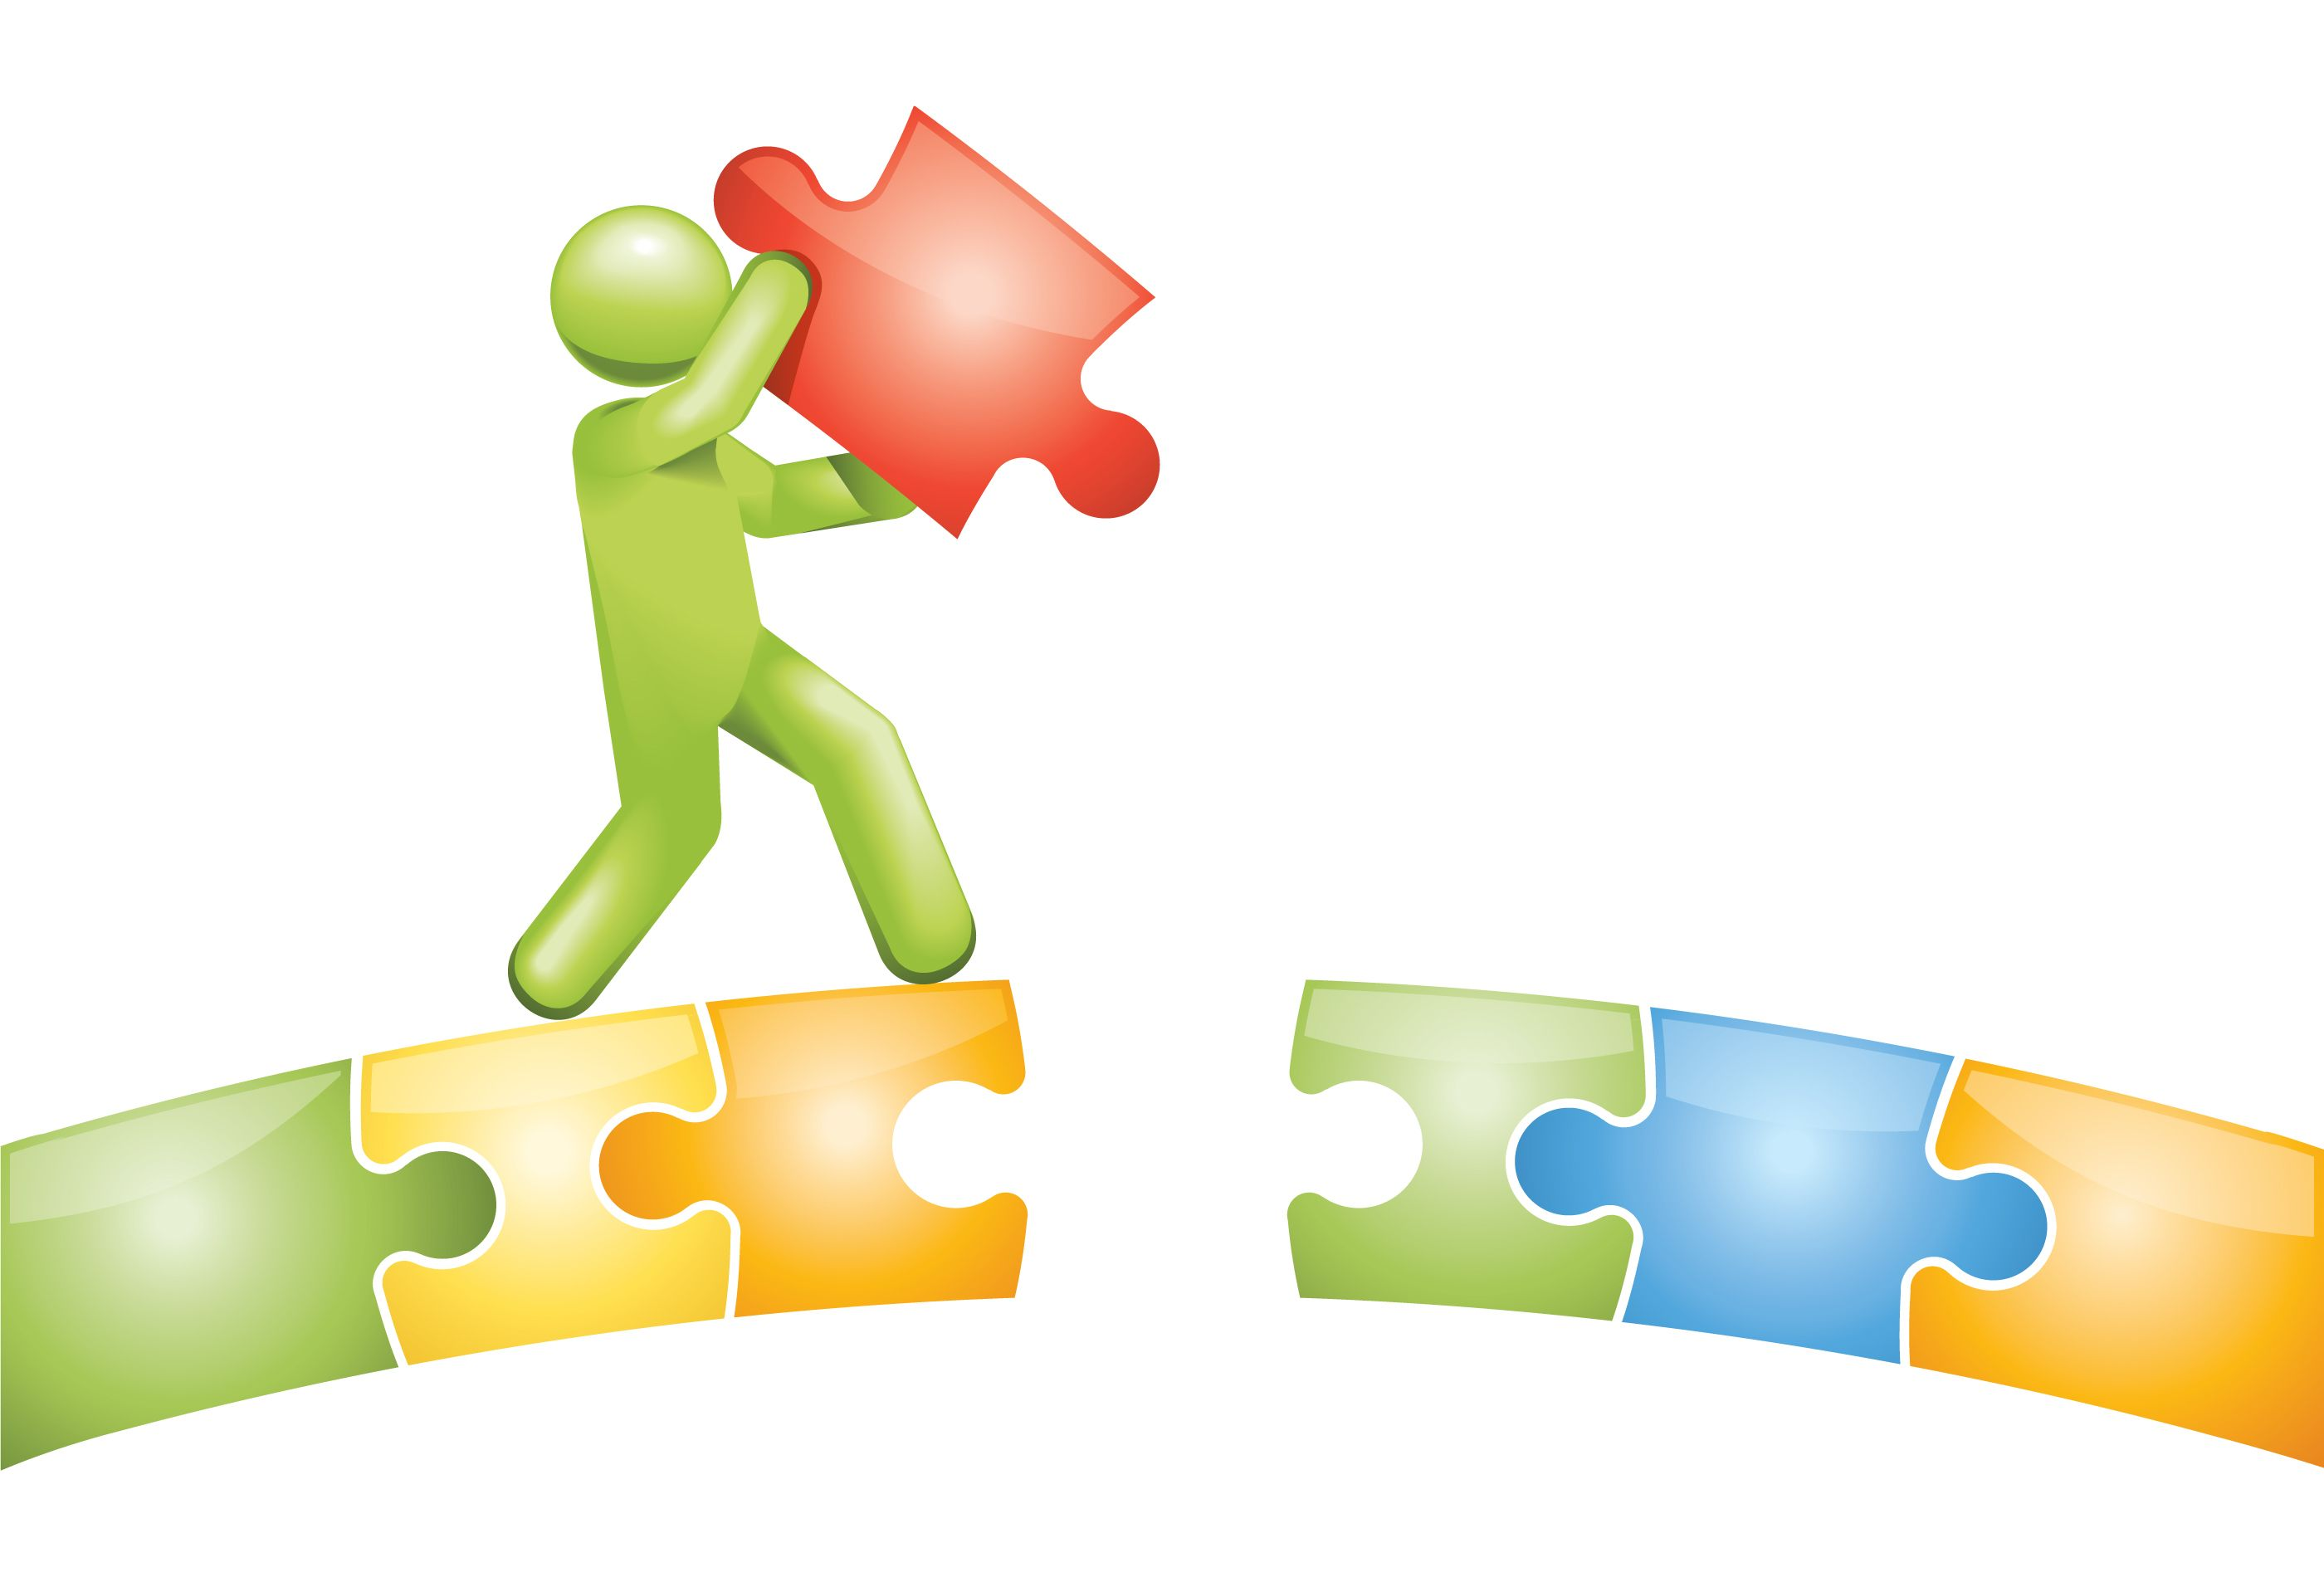 Bridging Gaps Clip Art enabling small business owners at